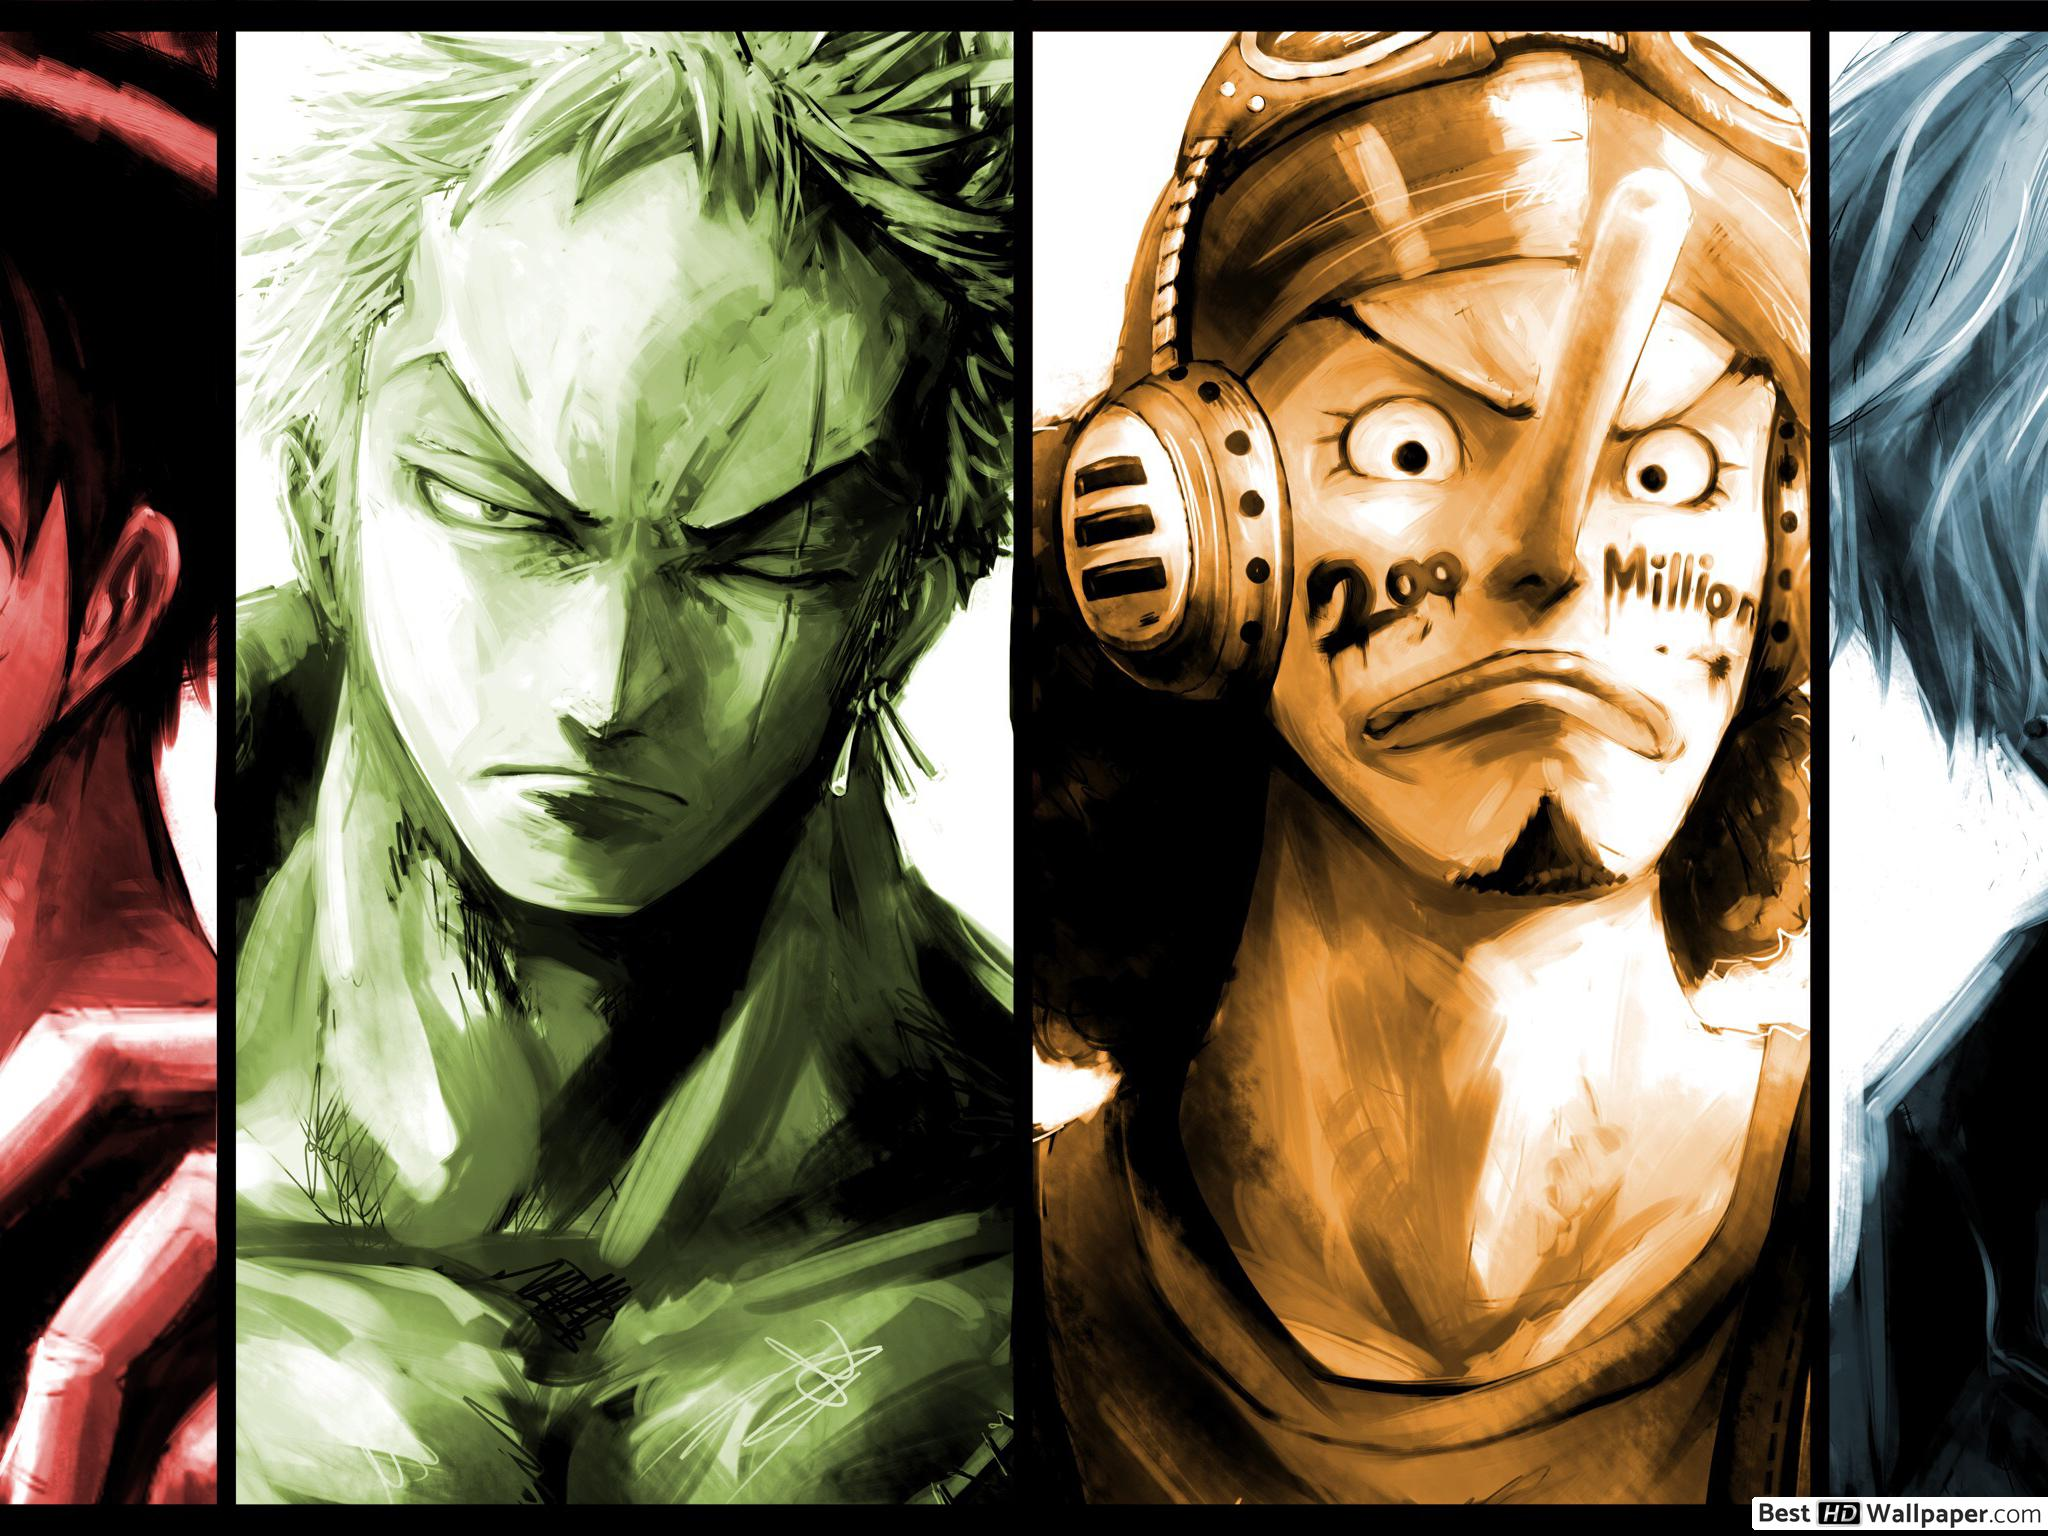 Zoro One Piece Wallpaper Hd 2048x1536 Download Hd Wallpaper Wallpapertip